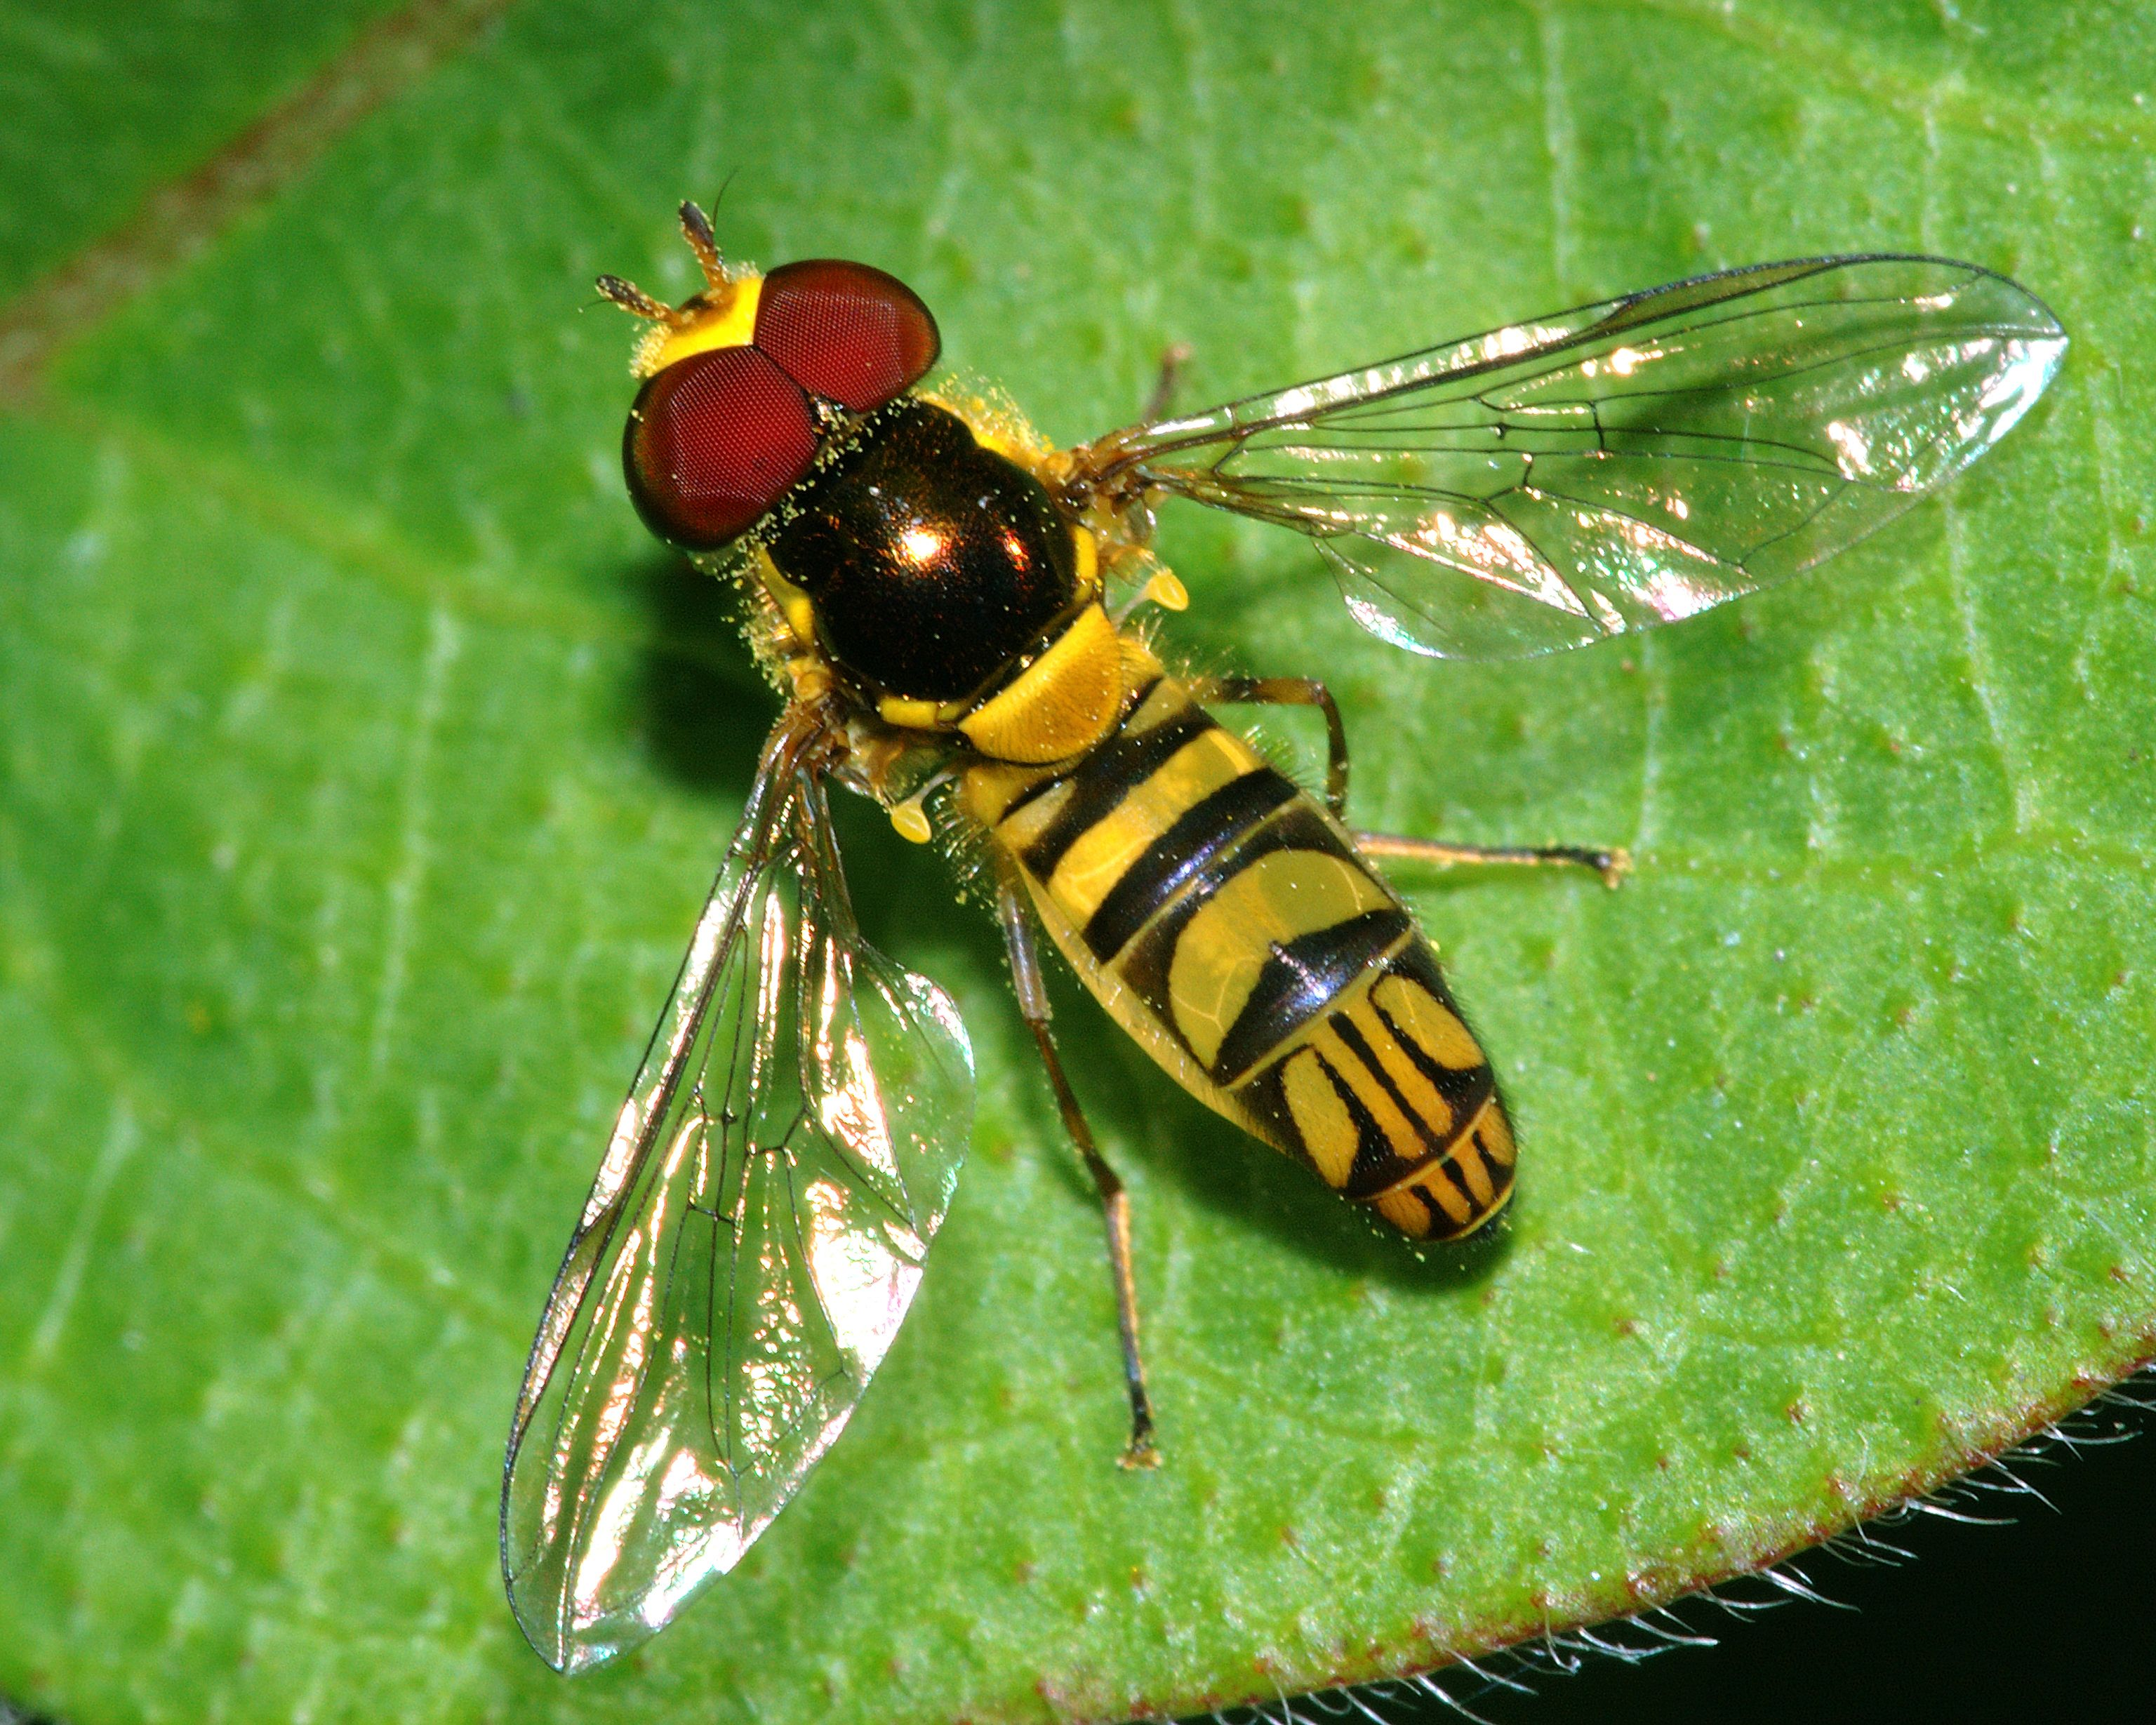 Syrphidae(hover flies): prey on plant pests(aphids, thrips), some species are major pollinators